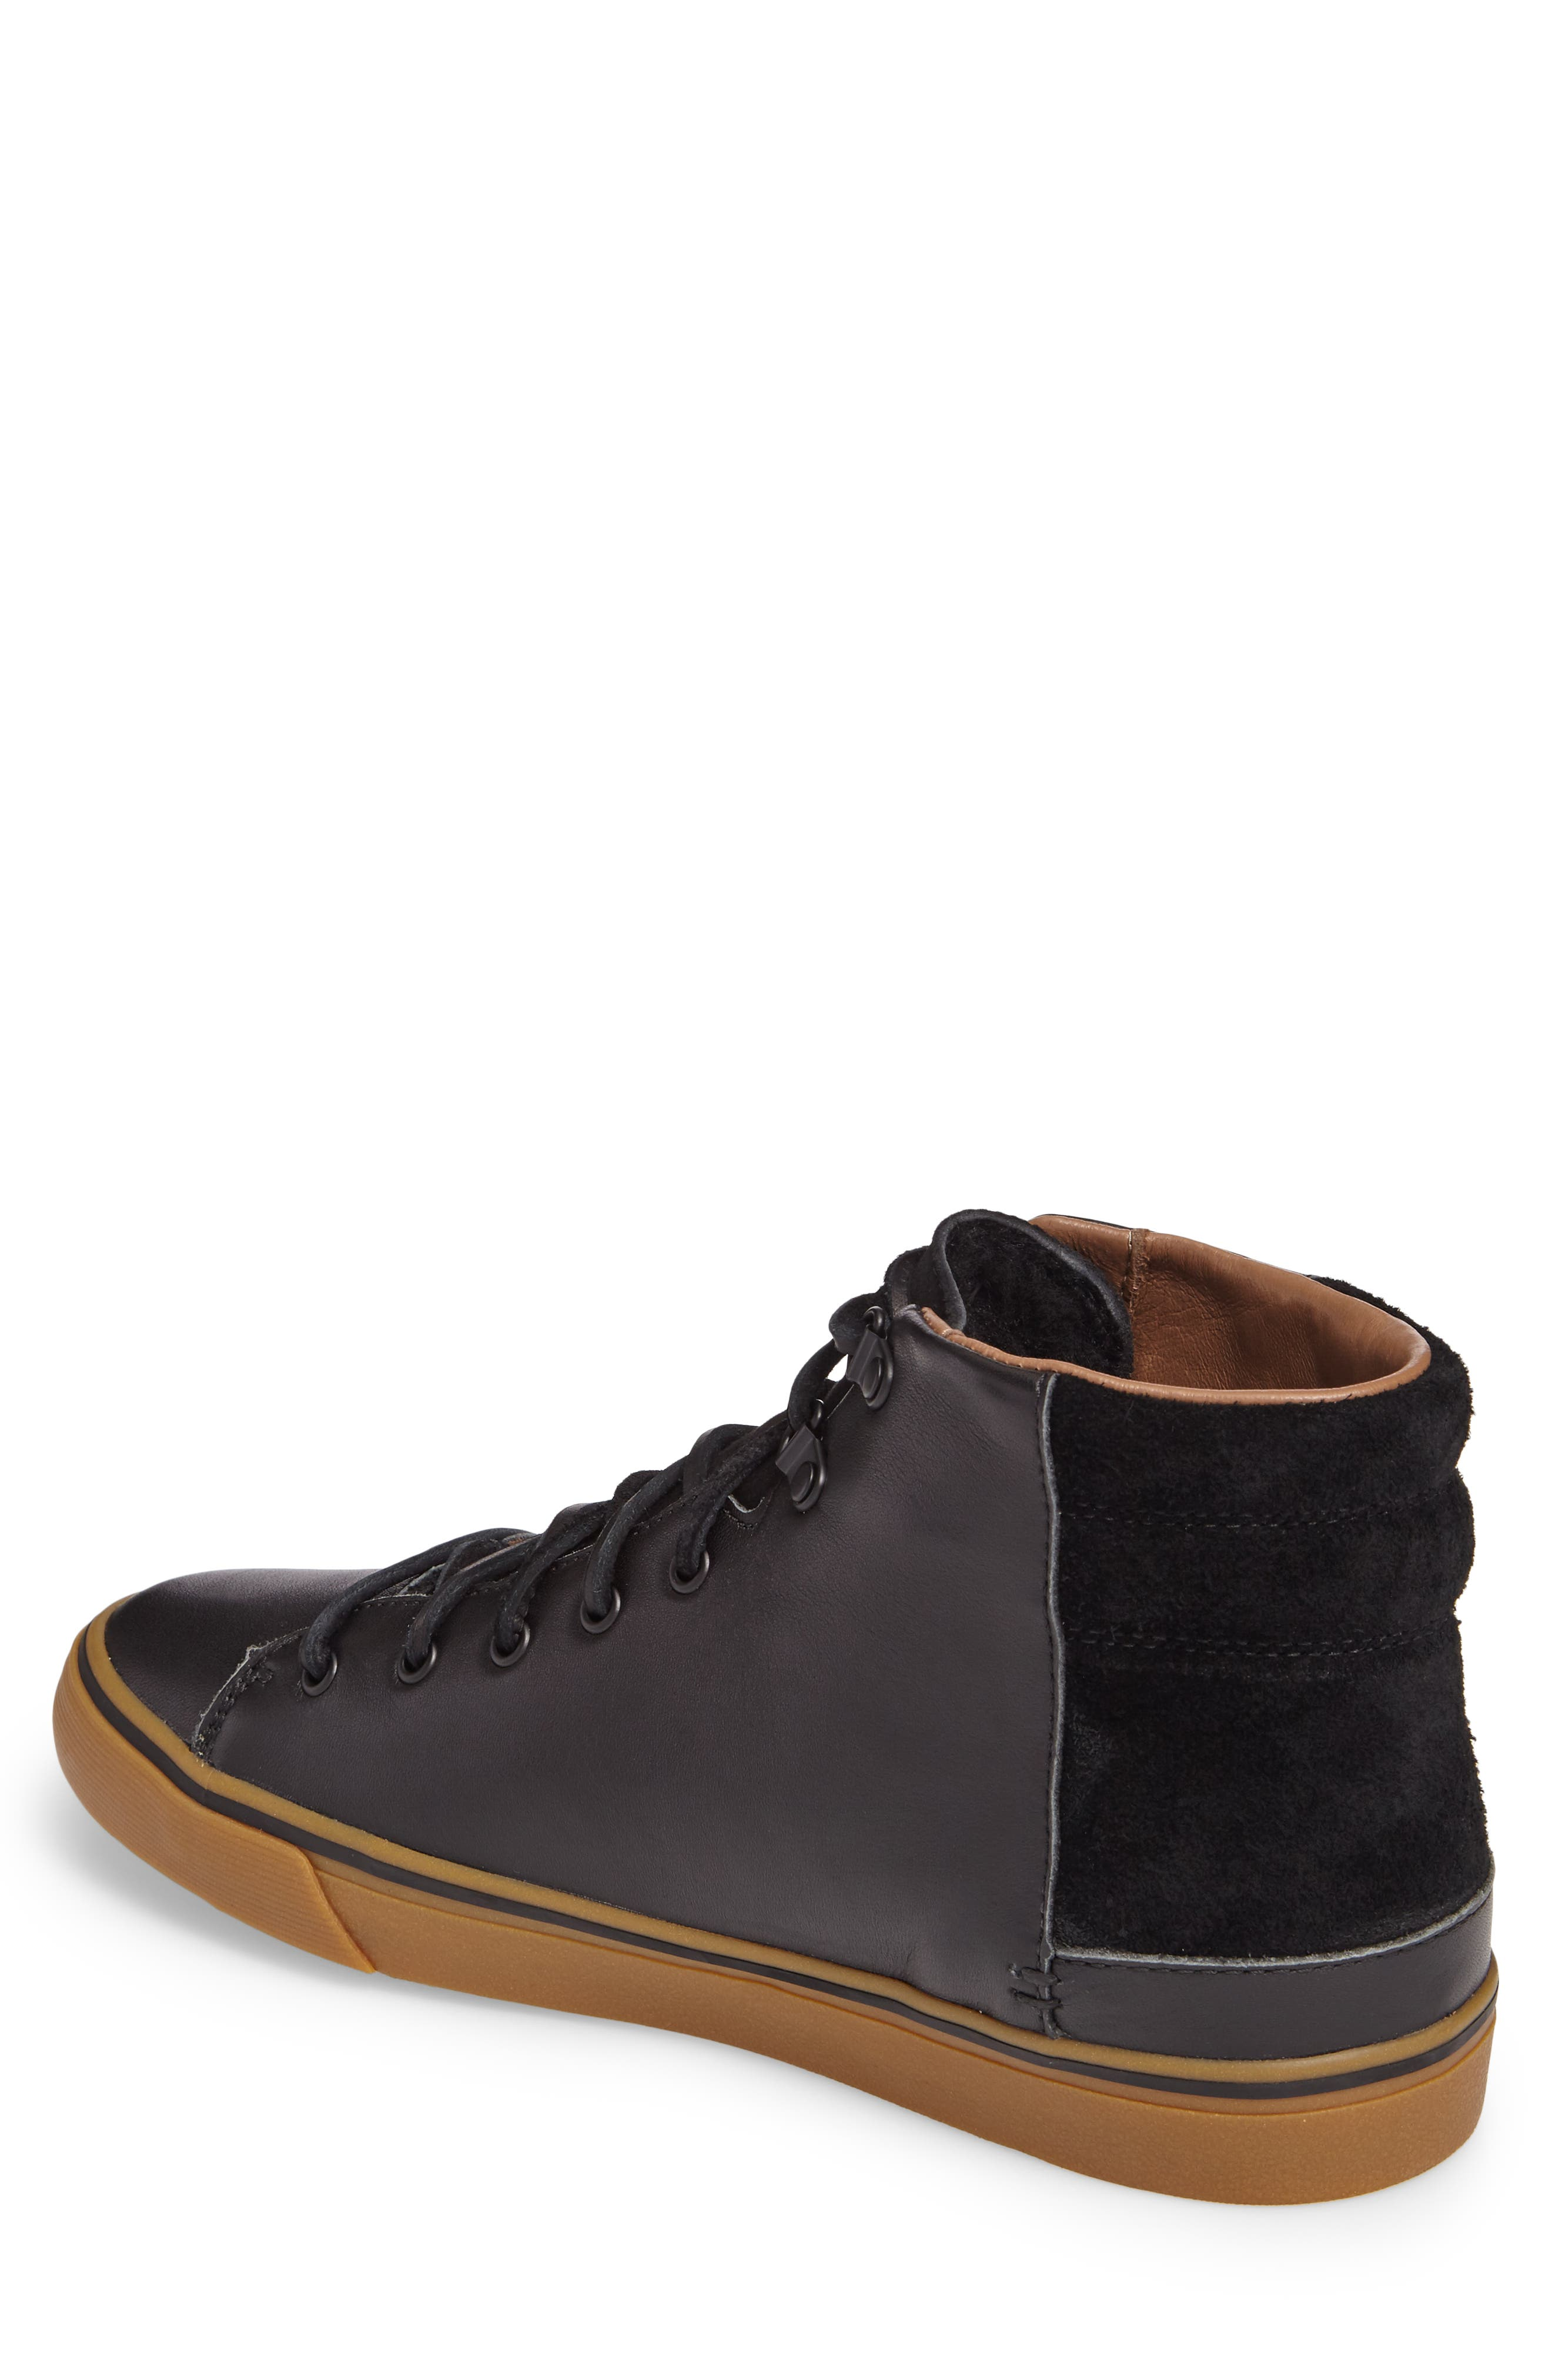 Hoyt Luxe Genuine Shearling High Top Sneaker,                             Alternate thumbnail 2, color,                             001